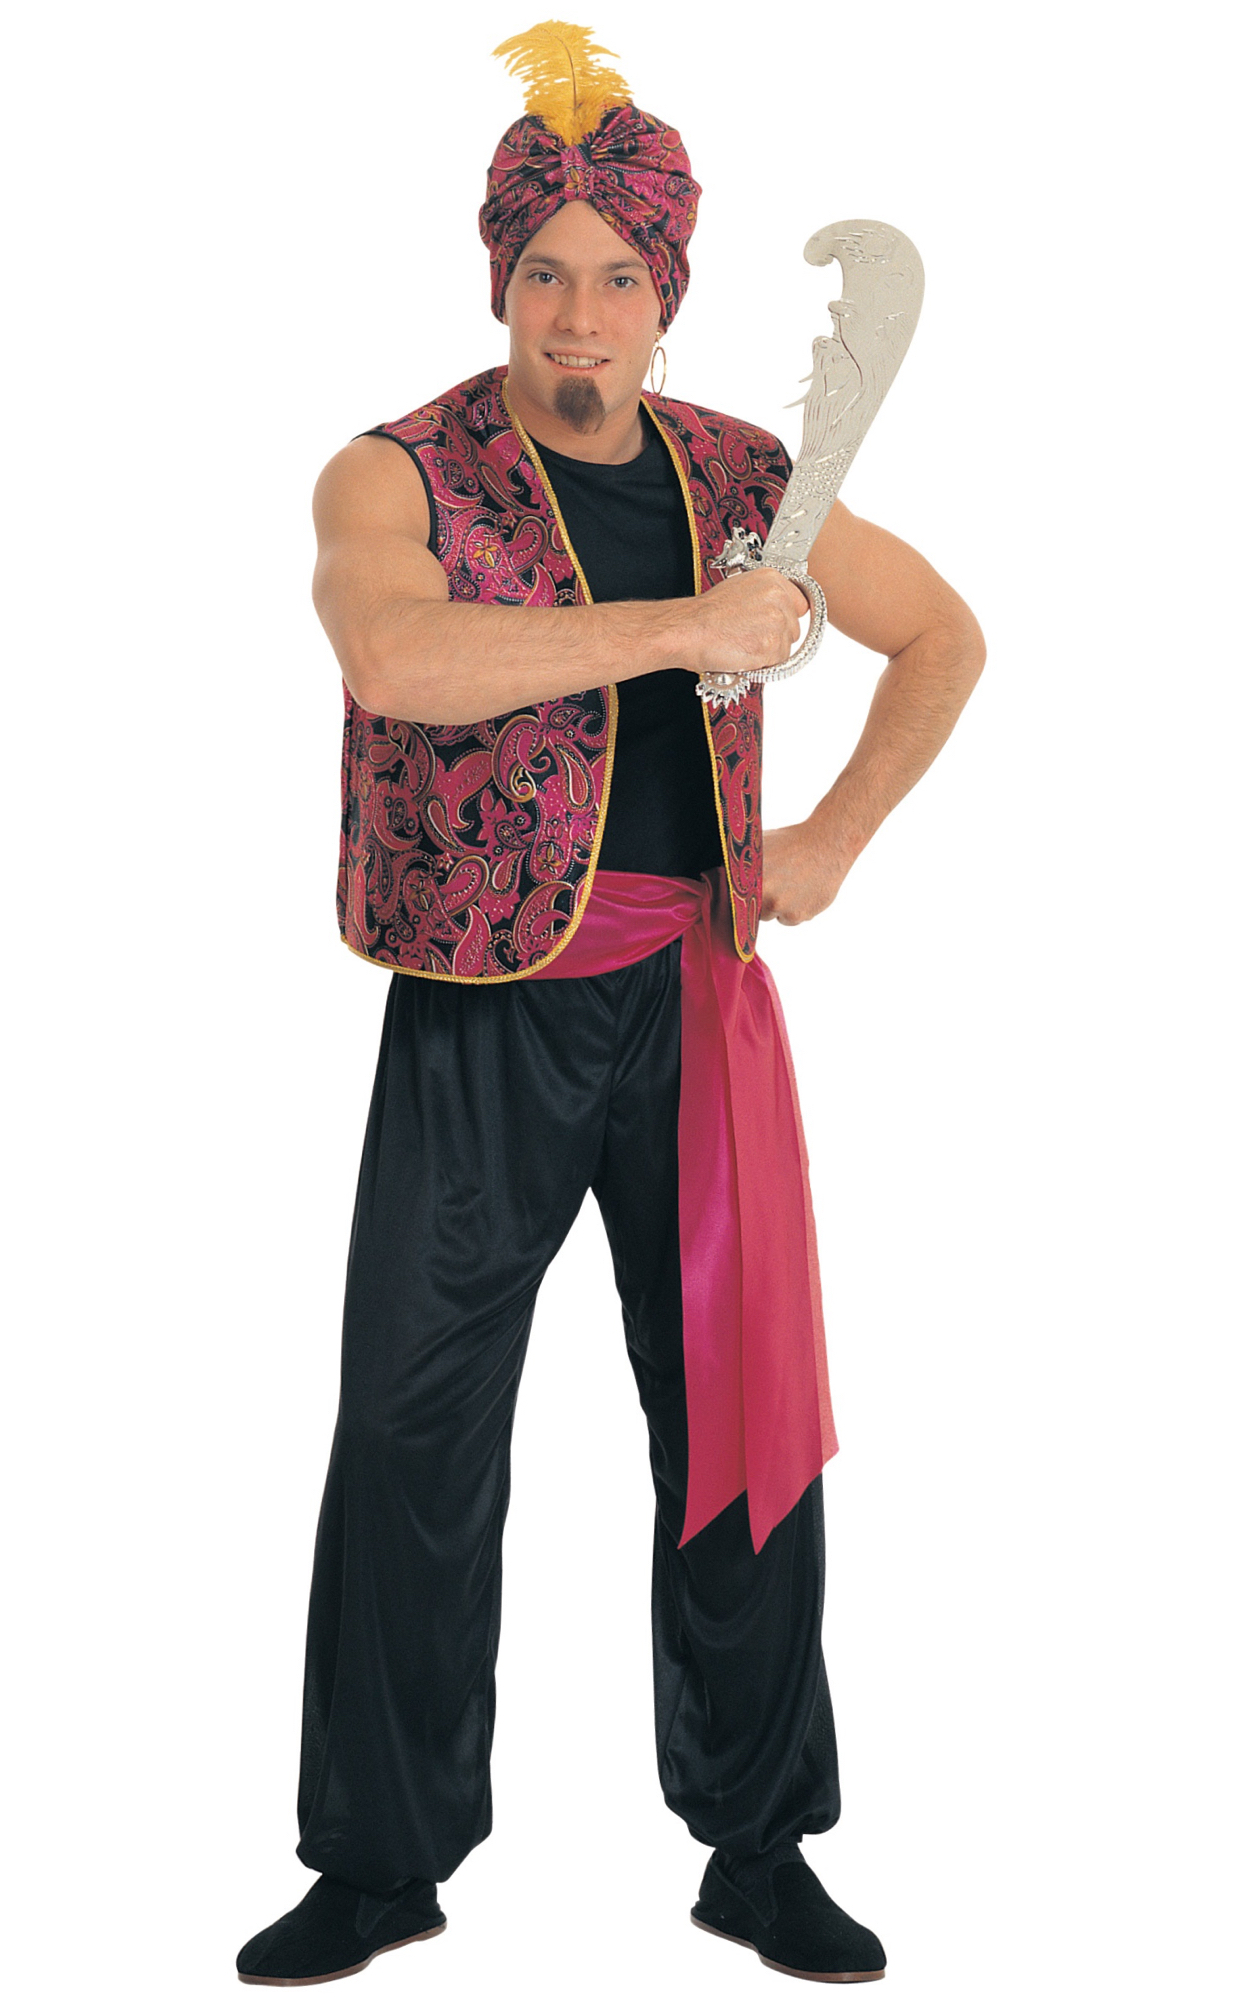 Sultan Arabian Aladdin Genie of The L& Sheik Ali Baba Dress Up Men Costume  sc 1 st  eBay : sheik halloween costume  - Germanpascual.Com